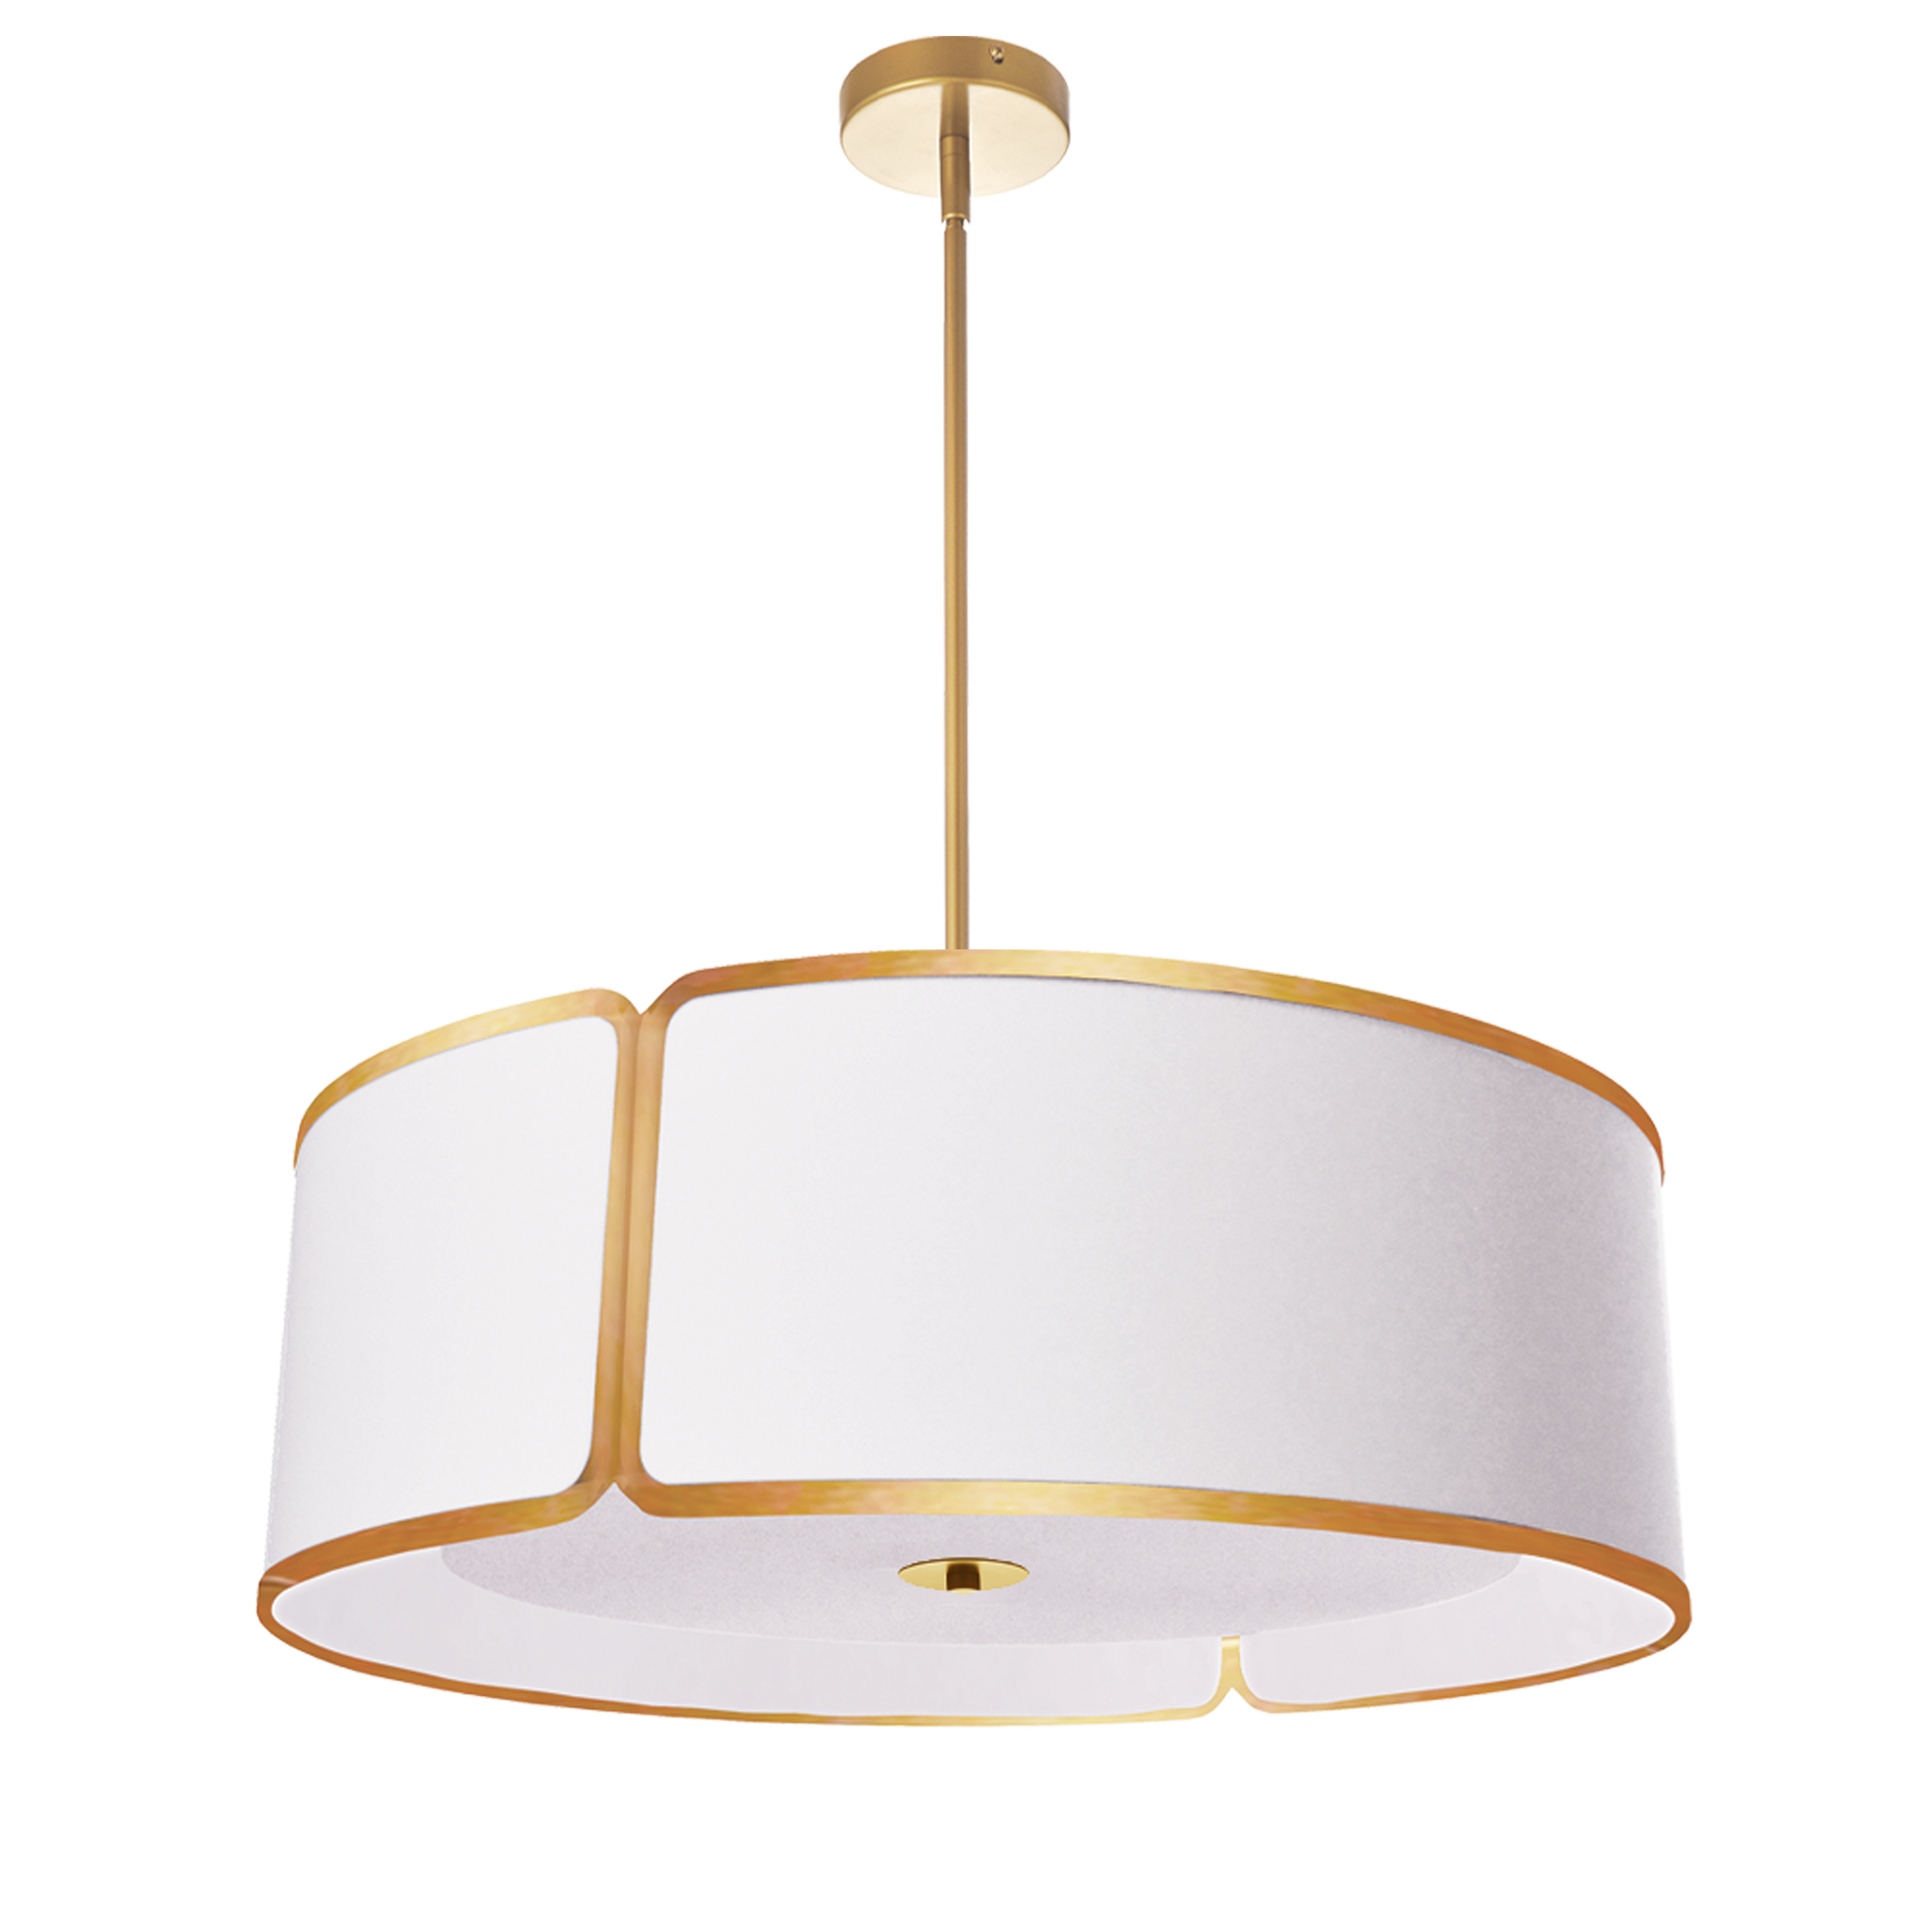 3LT Notched Drum Pendant Gld, Wh Shade & Diffuser